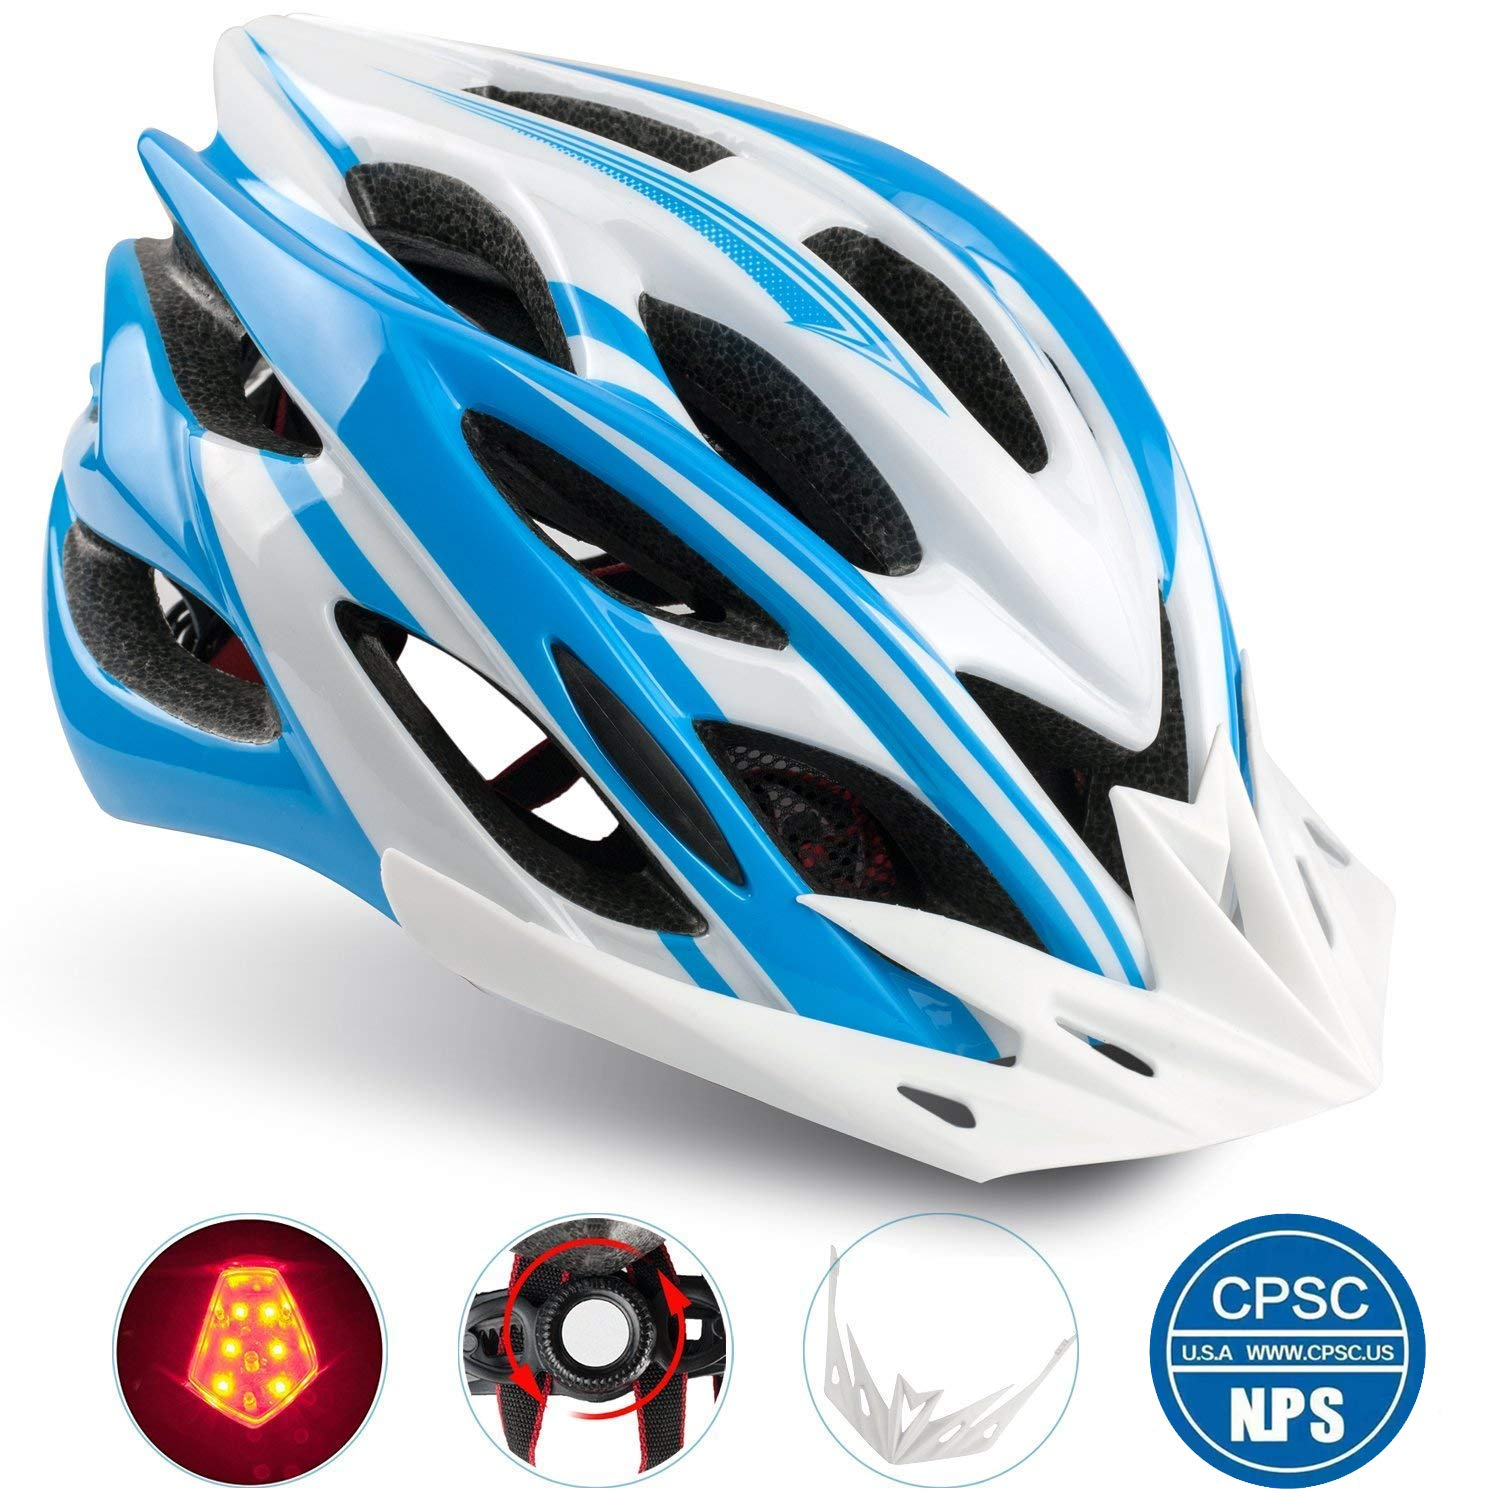 47a8ce63097 Basecamp Specialized Bike Helmet with Helmet Accessories-LED Light/Portable  Backpack, Adjustable Cycling Helmet Bicycle Helmet for Road&Mountain Adult  ...